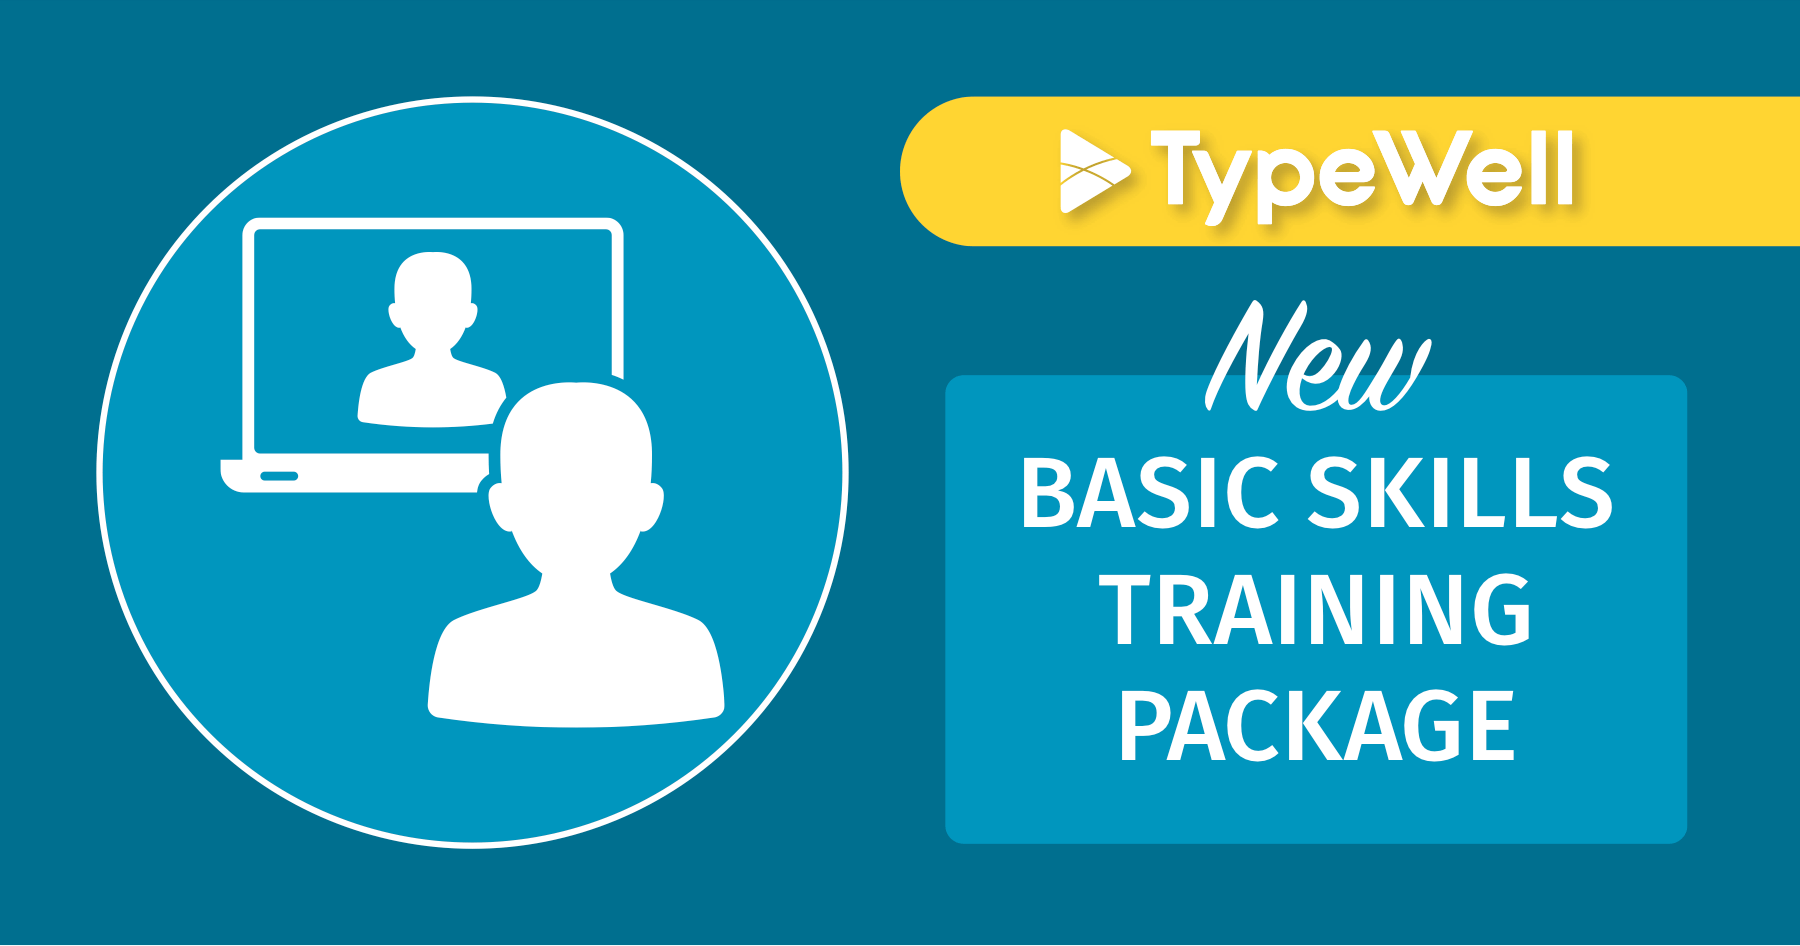 Basic Skills Training Package